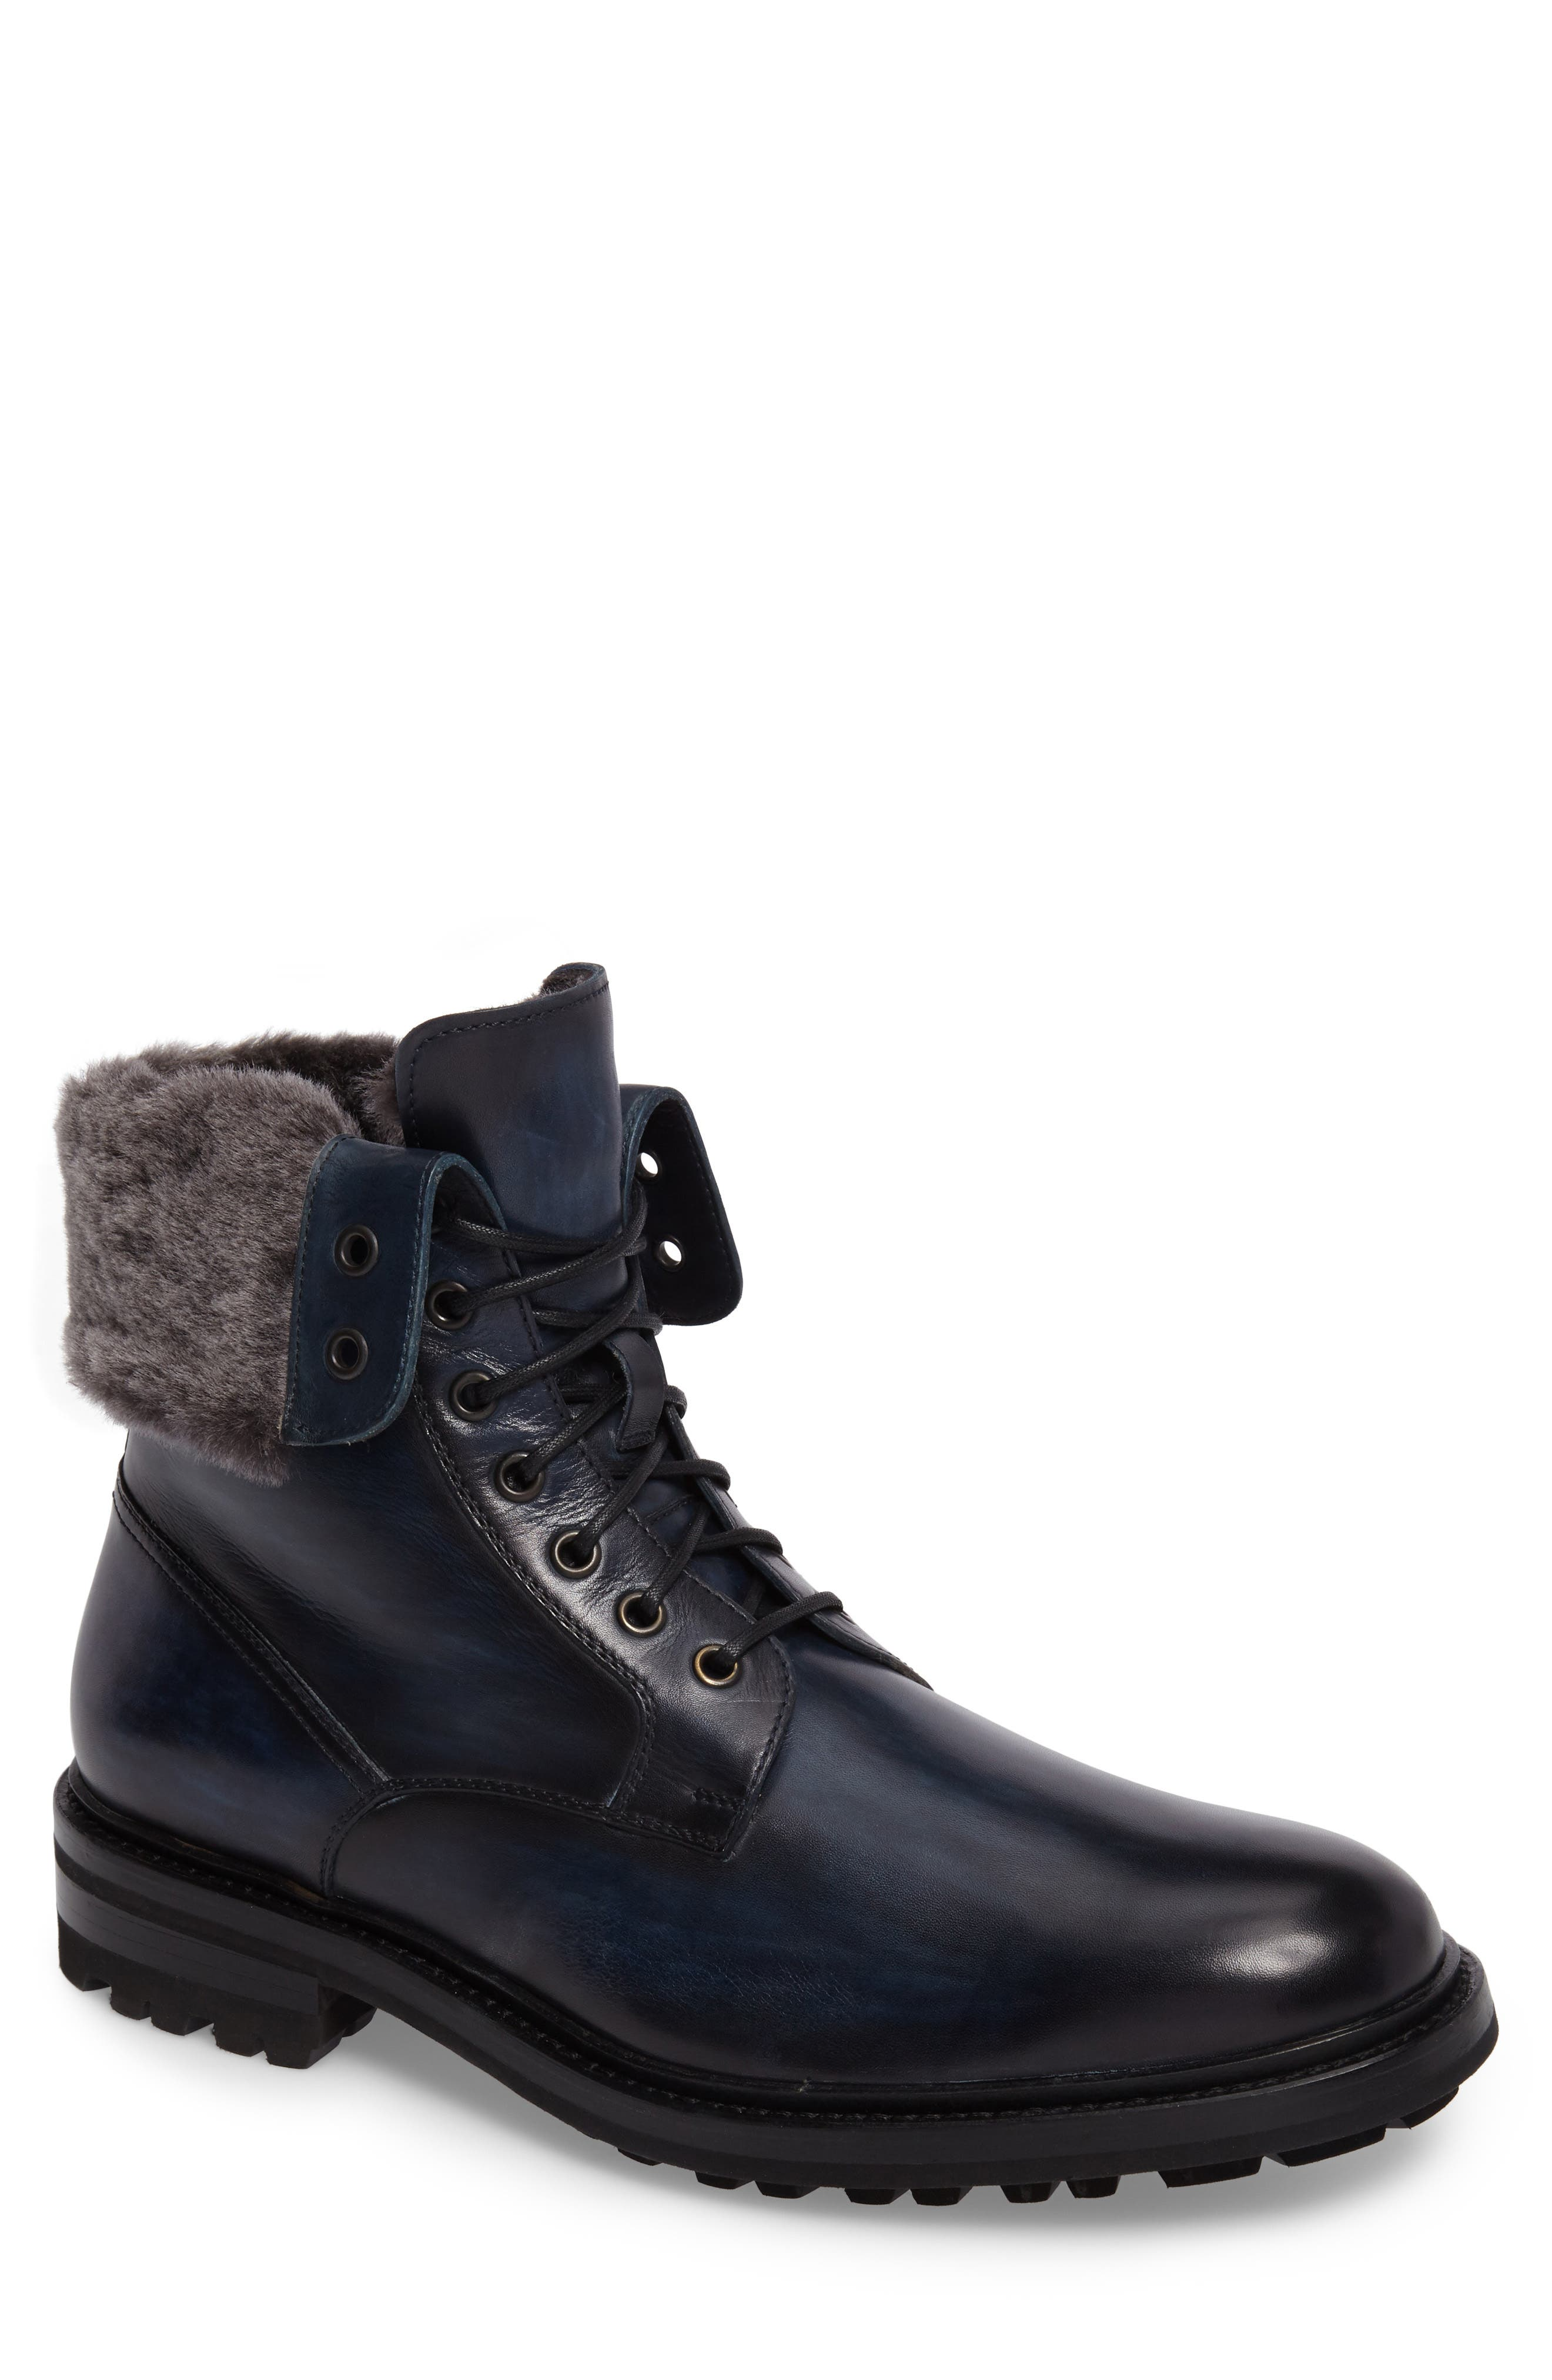 Paxton Plain Toe Boot with Genuine Rabbit Fur Cuff,                             Main thumbnail 1, color,                             Navy Leather